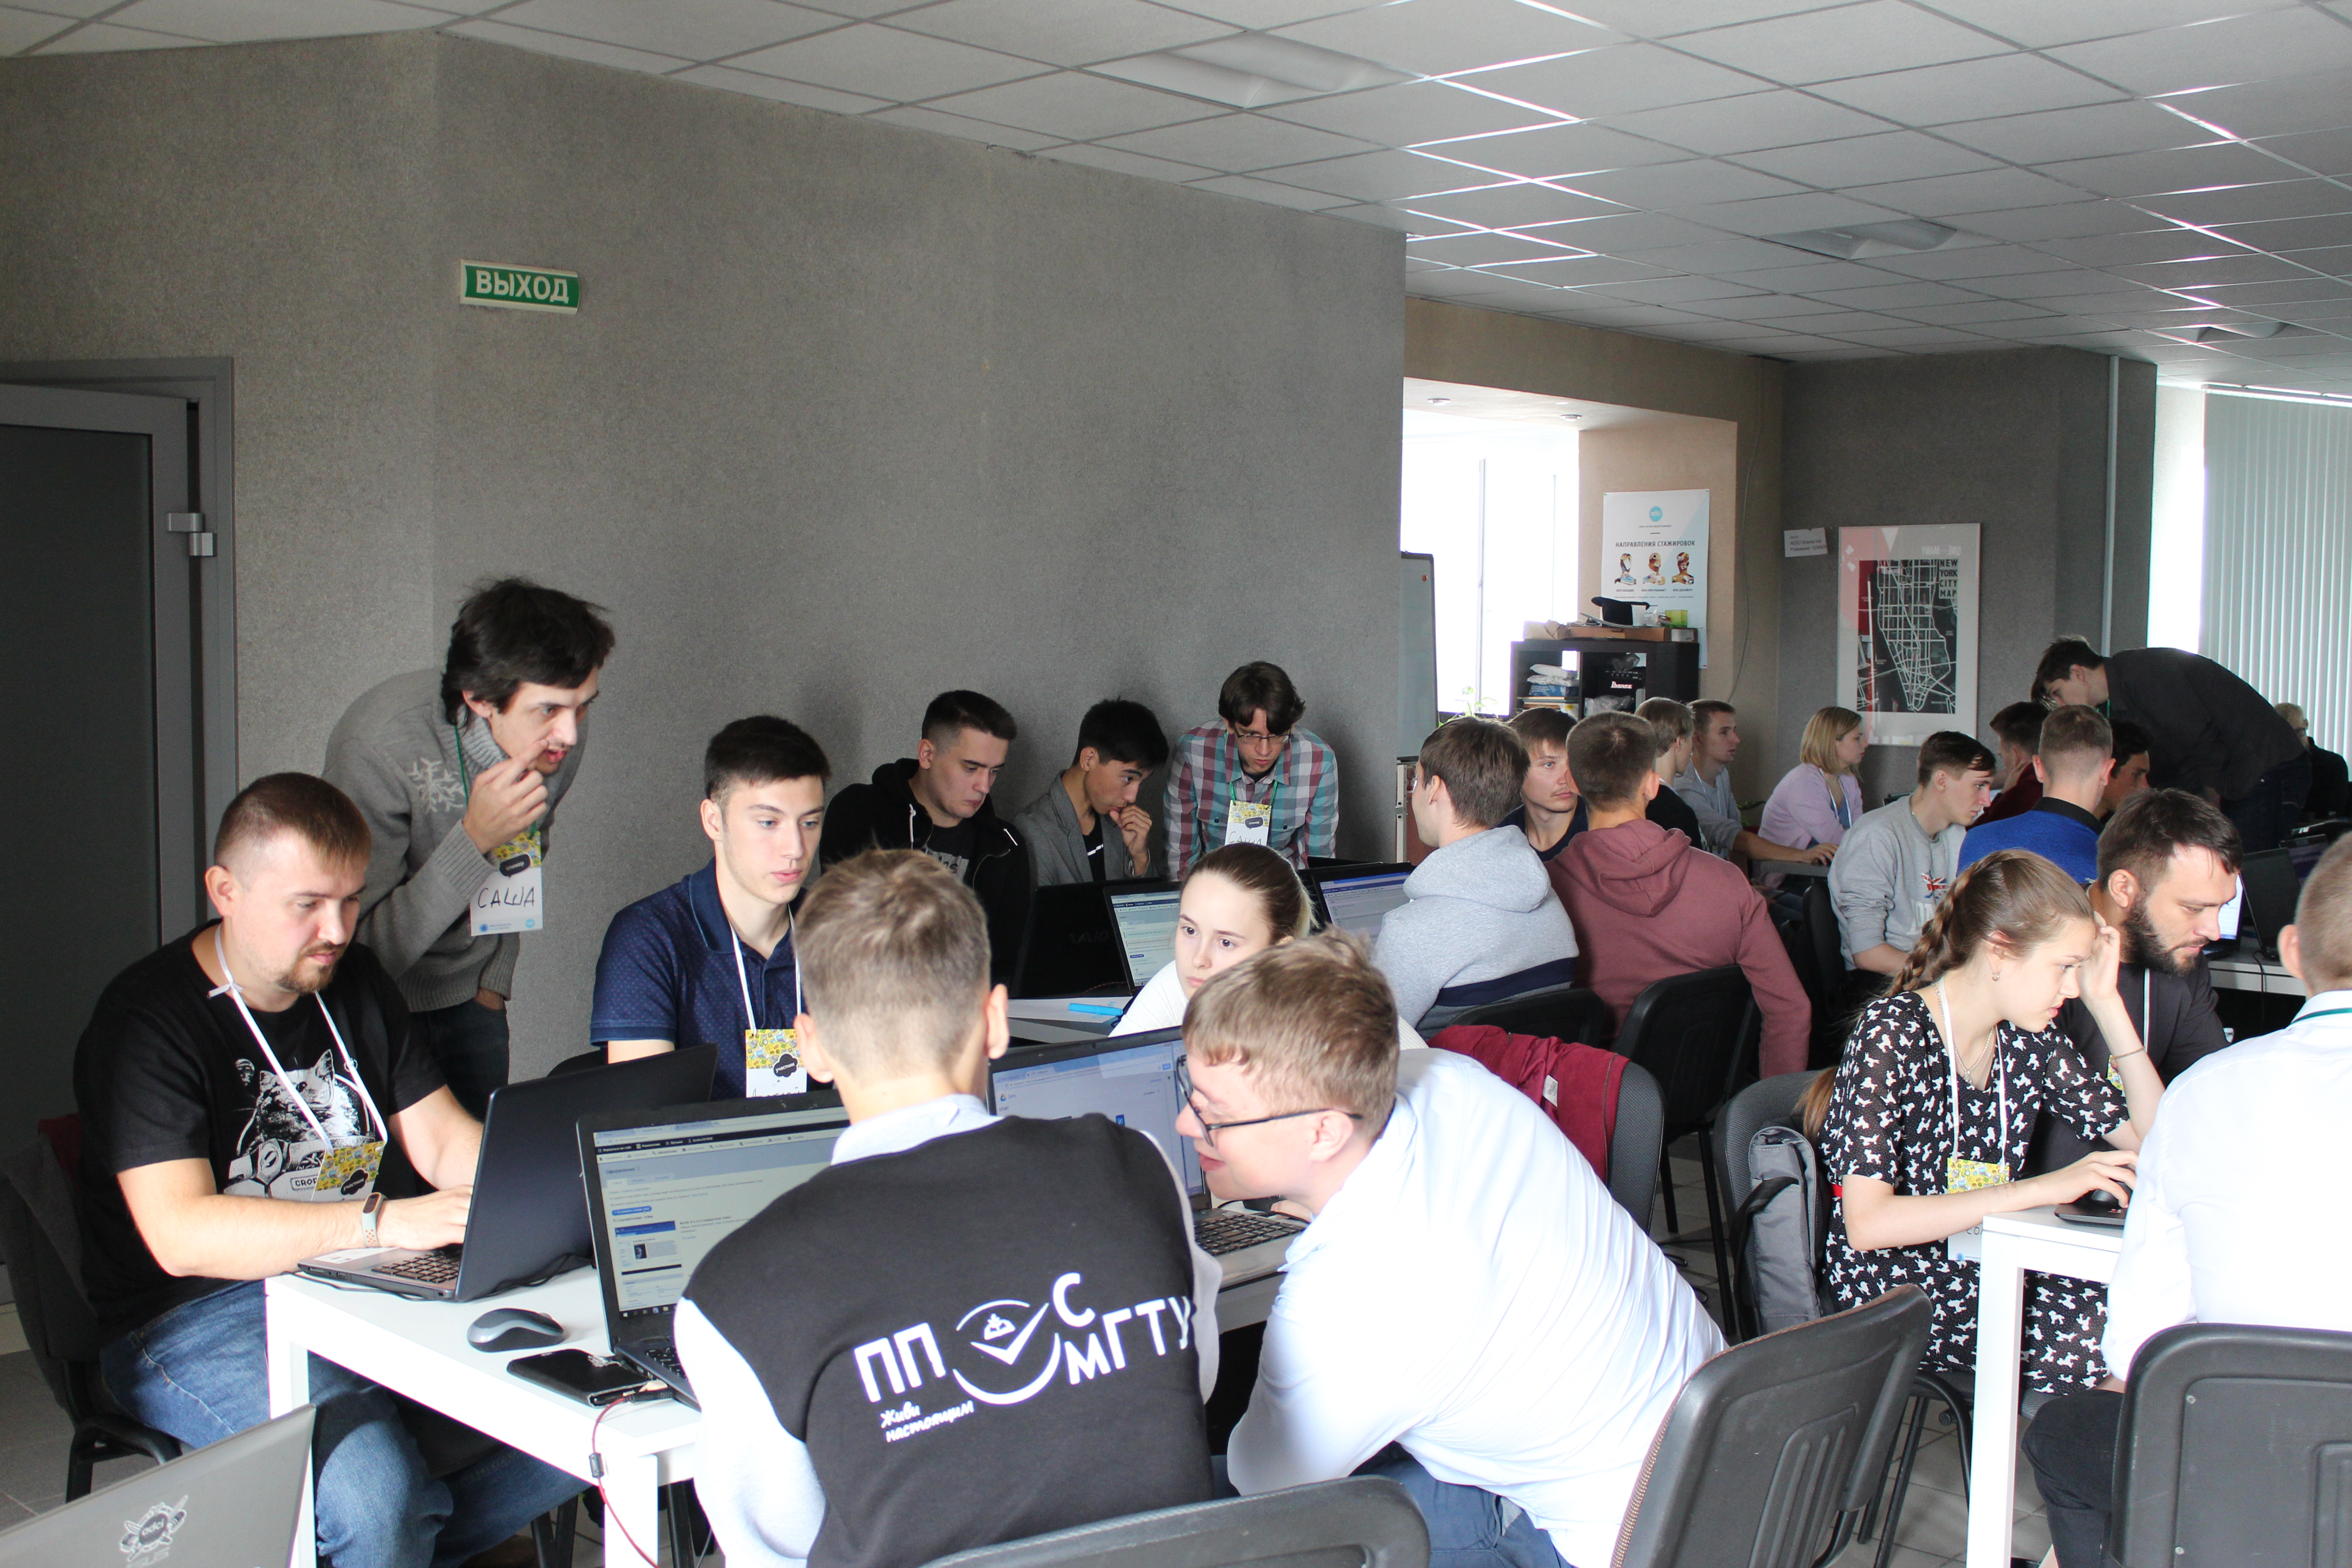 The second day of GTD was full of practical tasks